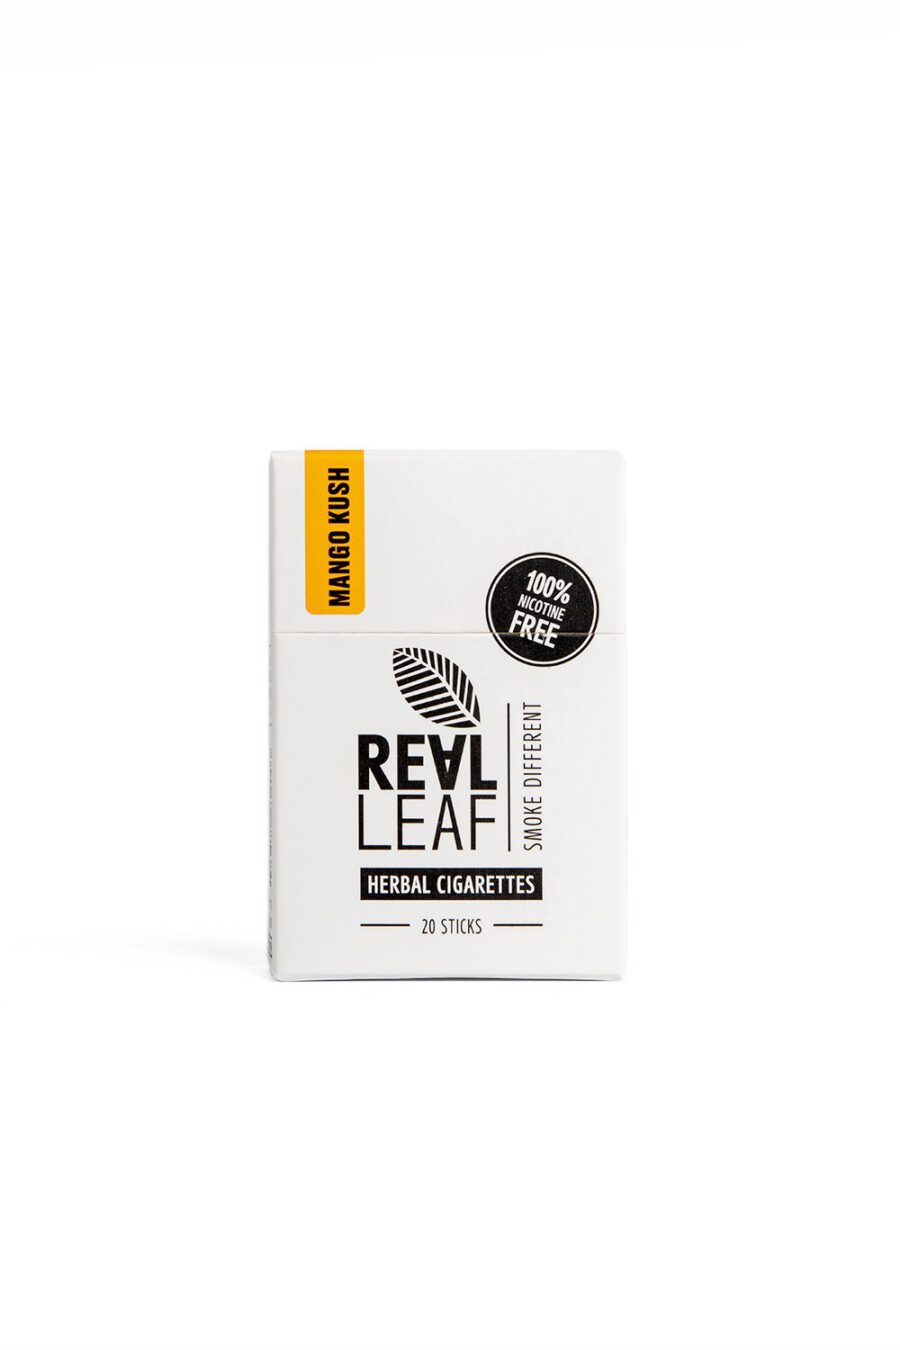 herbal cigarettes with mango kush terpenes help you quit smoking